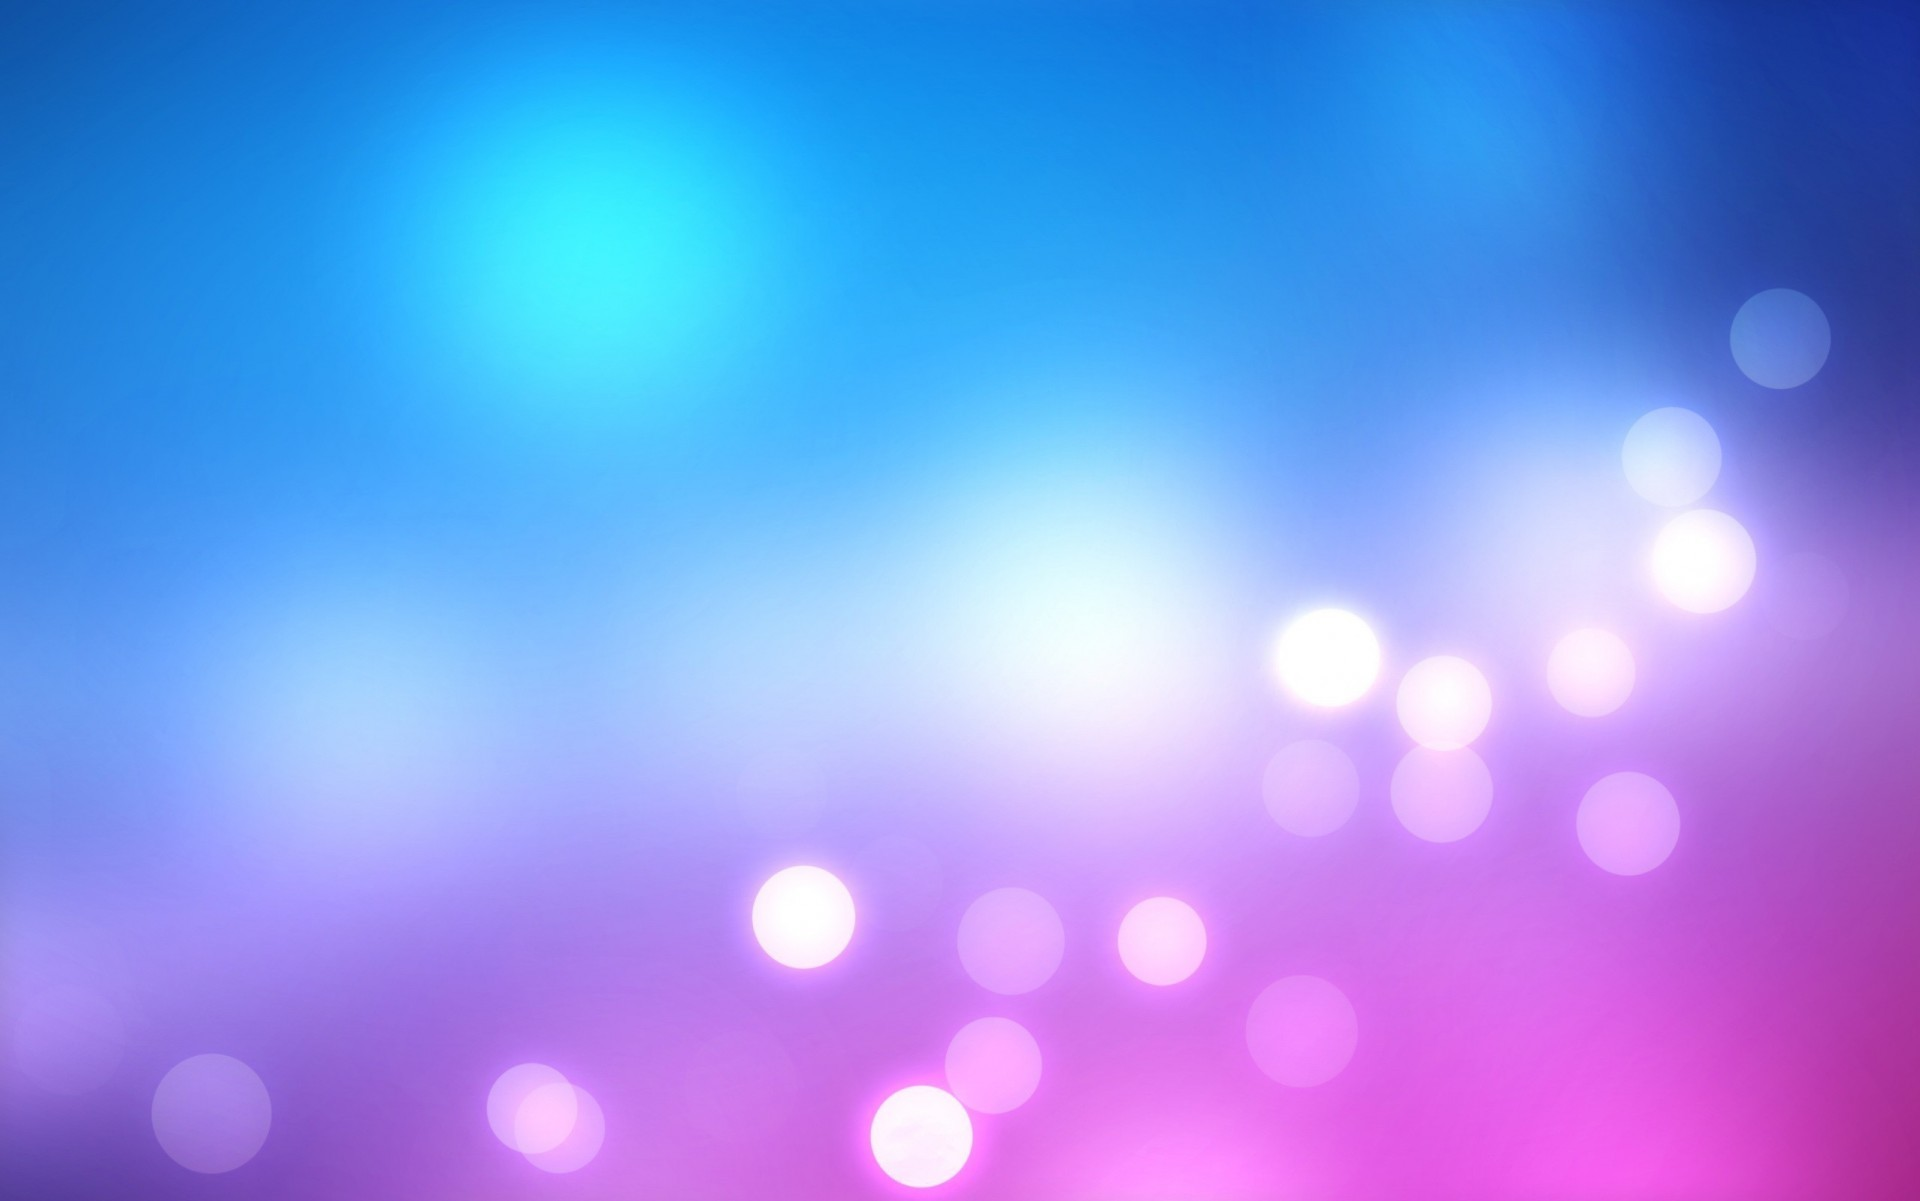 … cropped-blue-and-pink-background-wallpapers-and-images-download-color- images-pink-background.jpg